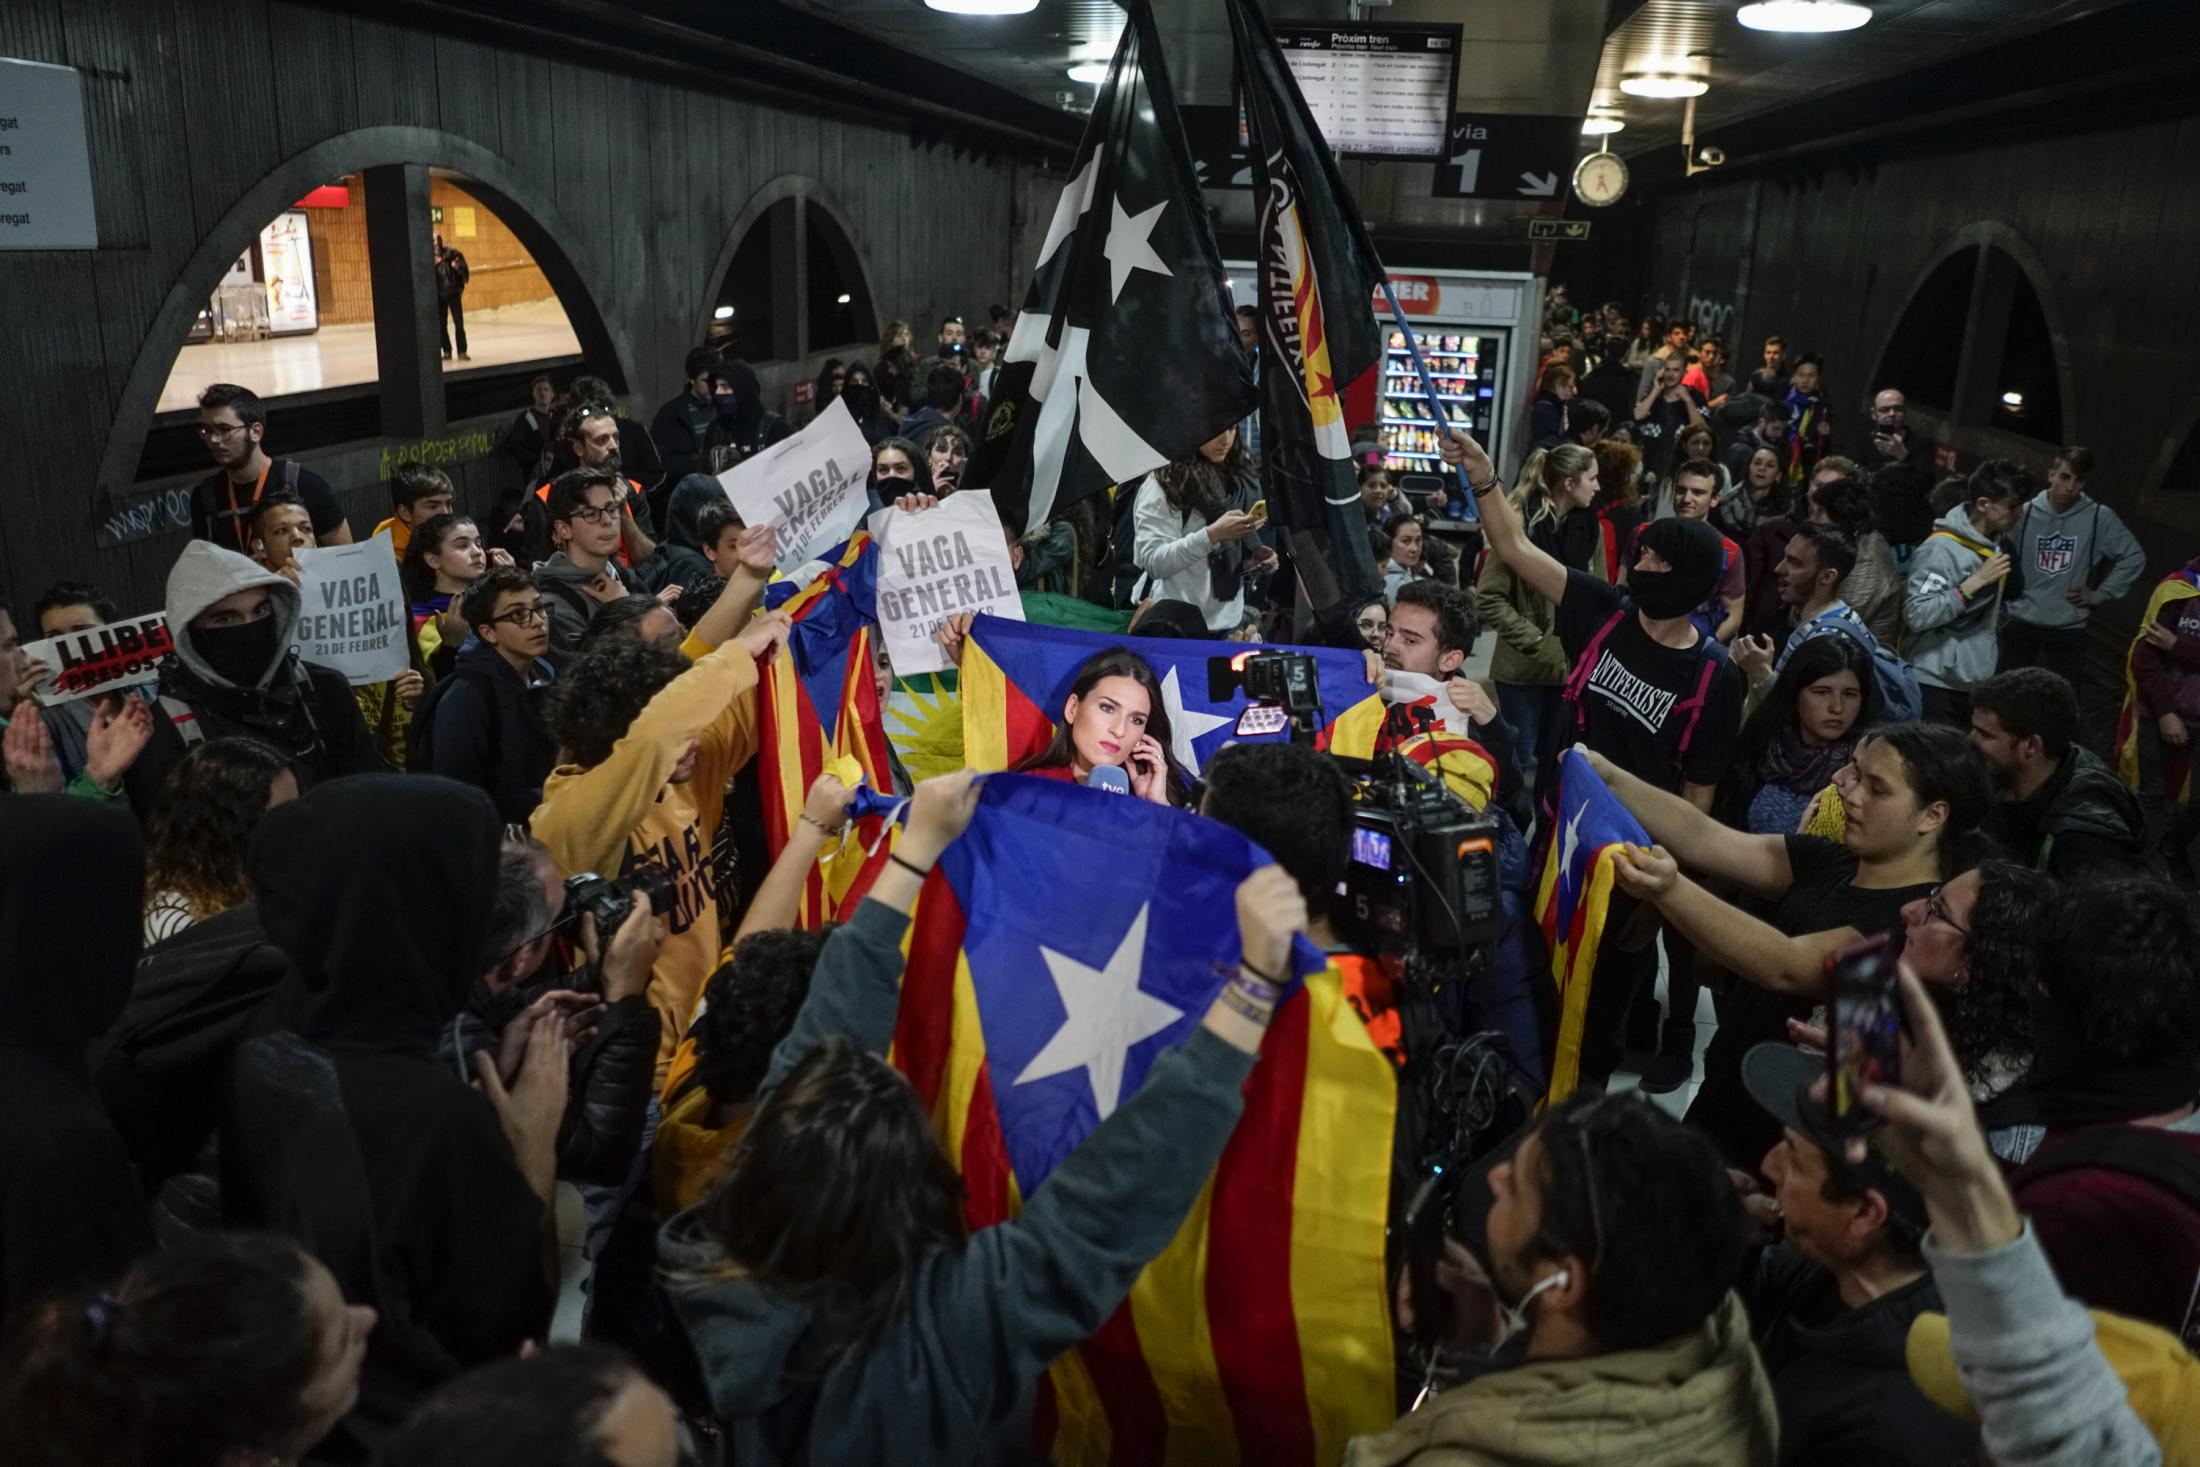 A reporter of The Spanish Television is surrounded by Esteladas or Independence flags, as demonstrators block a train rail at the subway in Barcelona, during a general strike in Catalonia, Spain, Thursday, Feb. 21, 2019. Strikers advocating for Catalonia's secession from Spain blocked major highways, train lines and roads across the northeastern region.